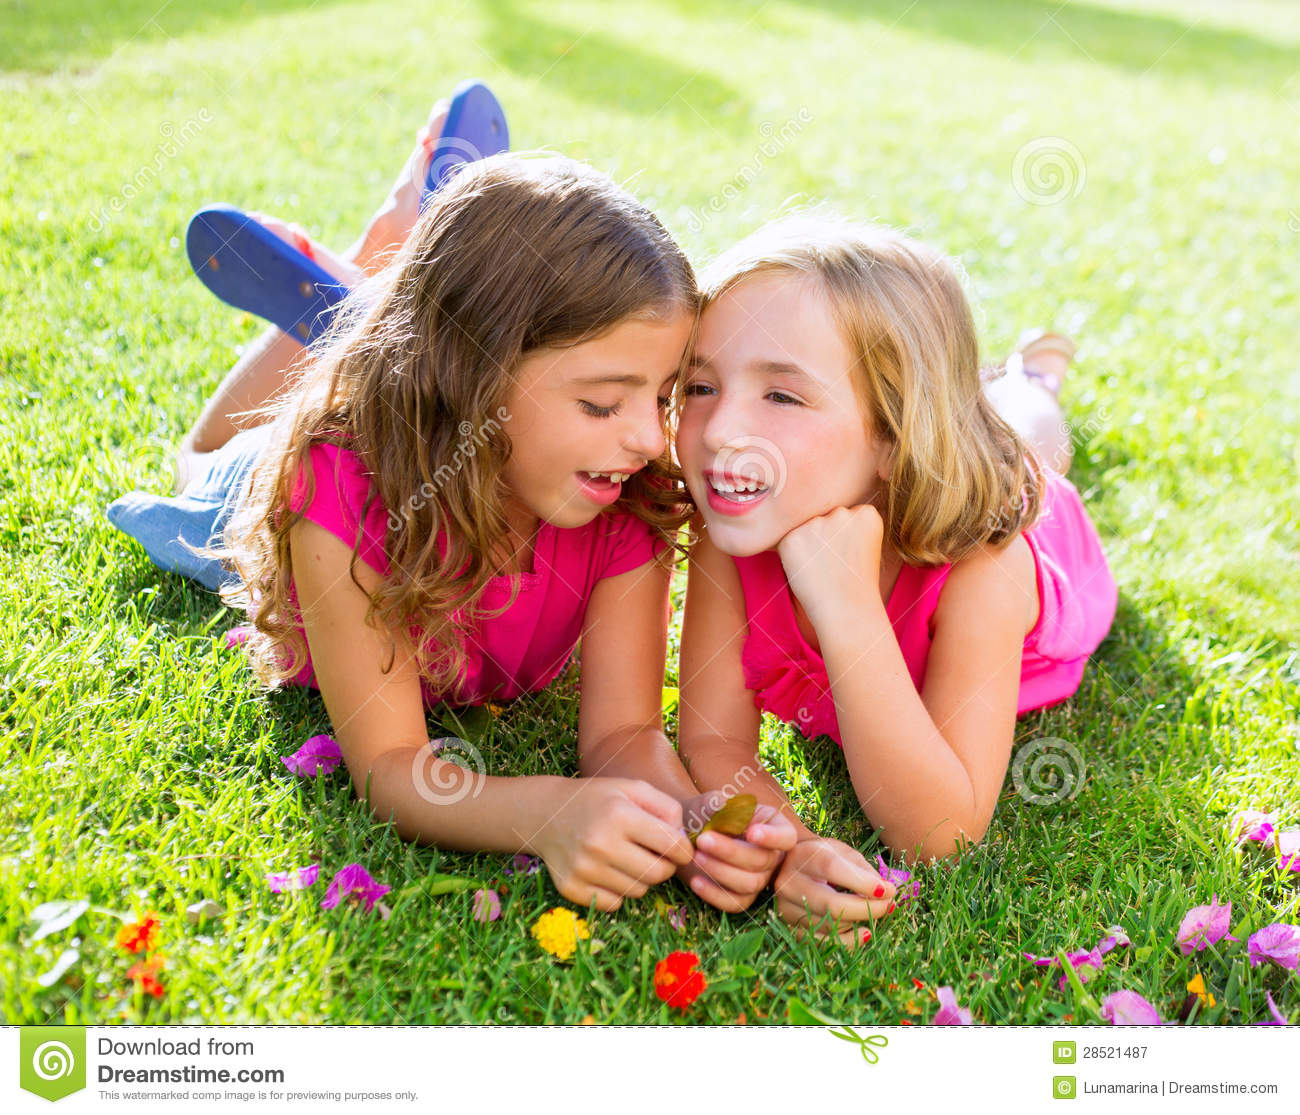 Young Happy Beautiful Family Playing Together On The Beach: Children Girls Playing Whispering On Flowers Grass Royalty